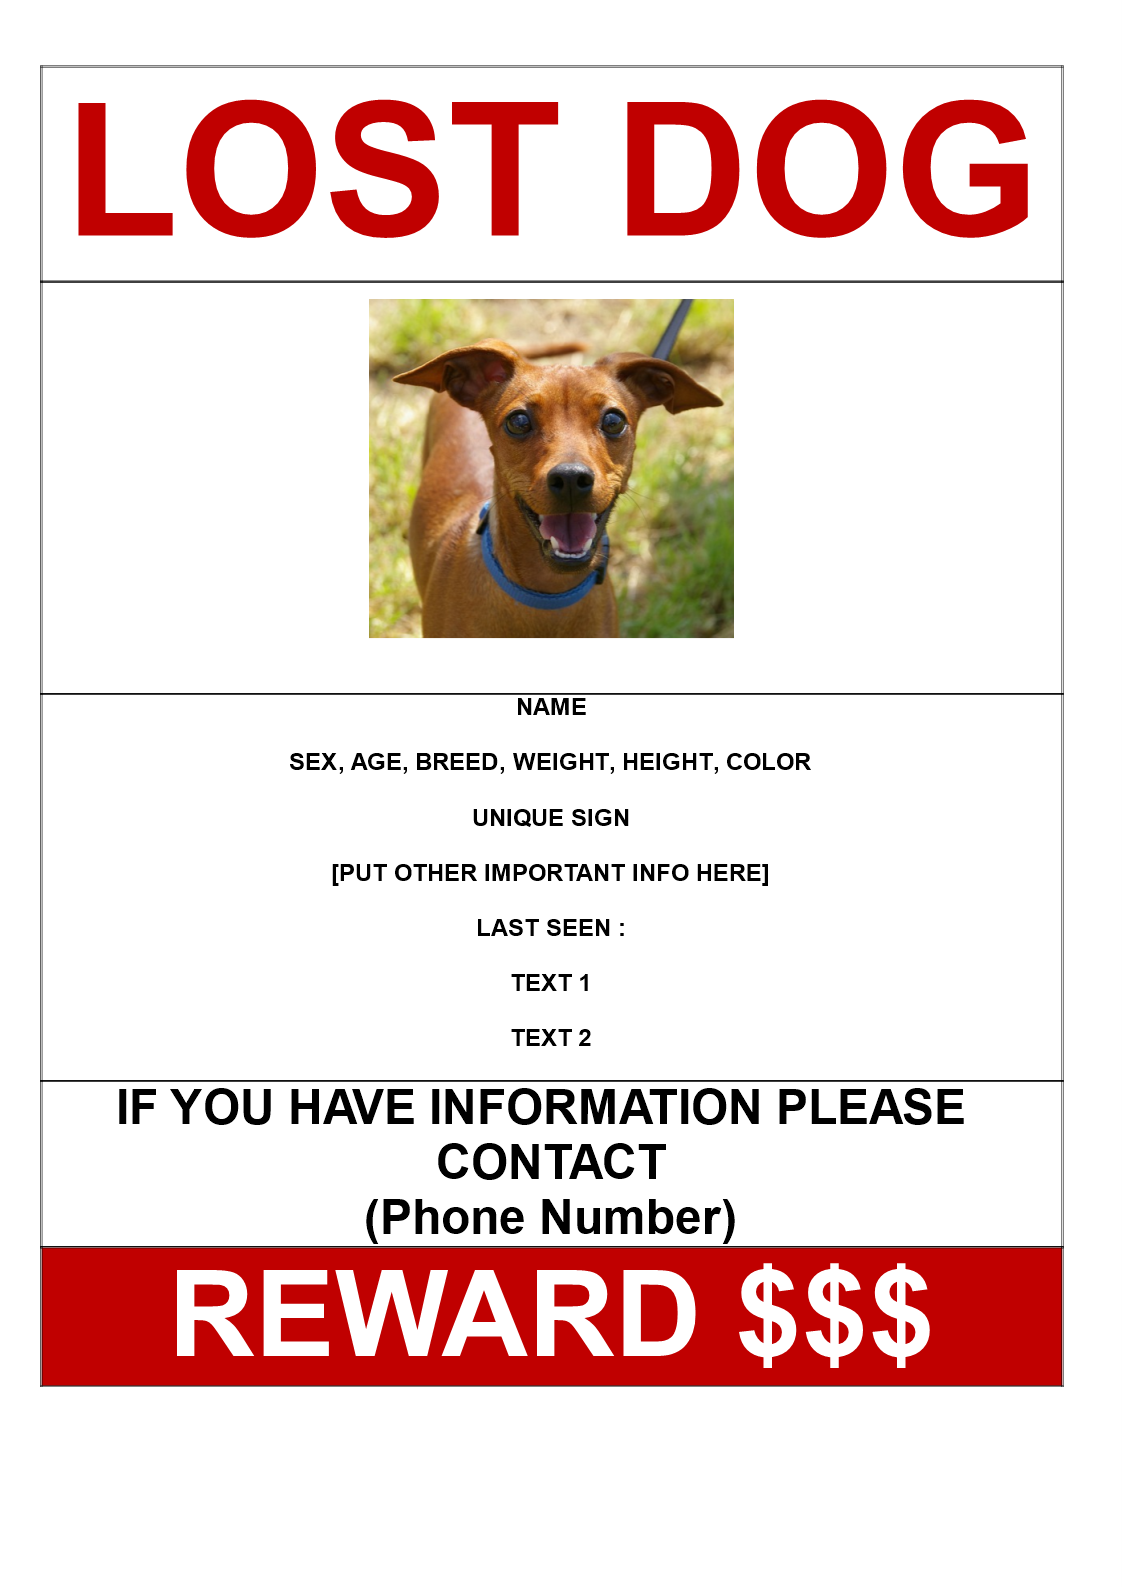 Missing Dog Poster With Reward A3 Size Missing Dog Poster A3  3ed2309113318a44fac015bf29cf8e76 677228862686481556. Lost Dog Poster  Template  Lost Dog Poster Template